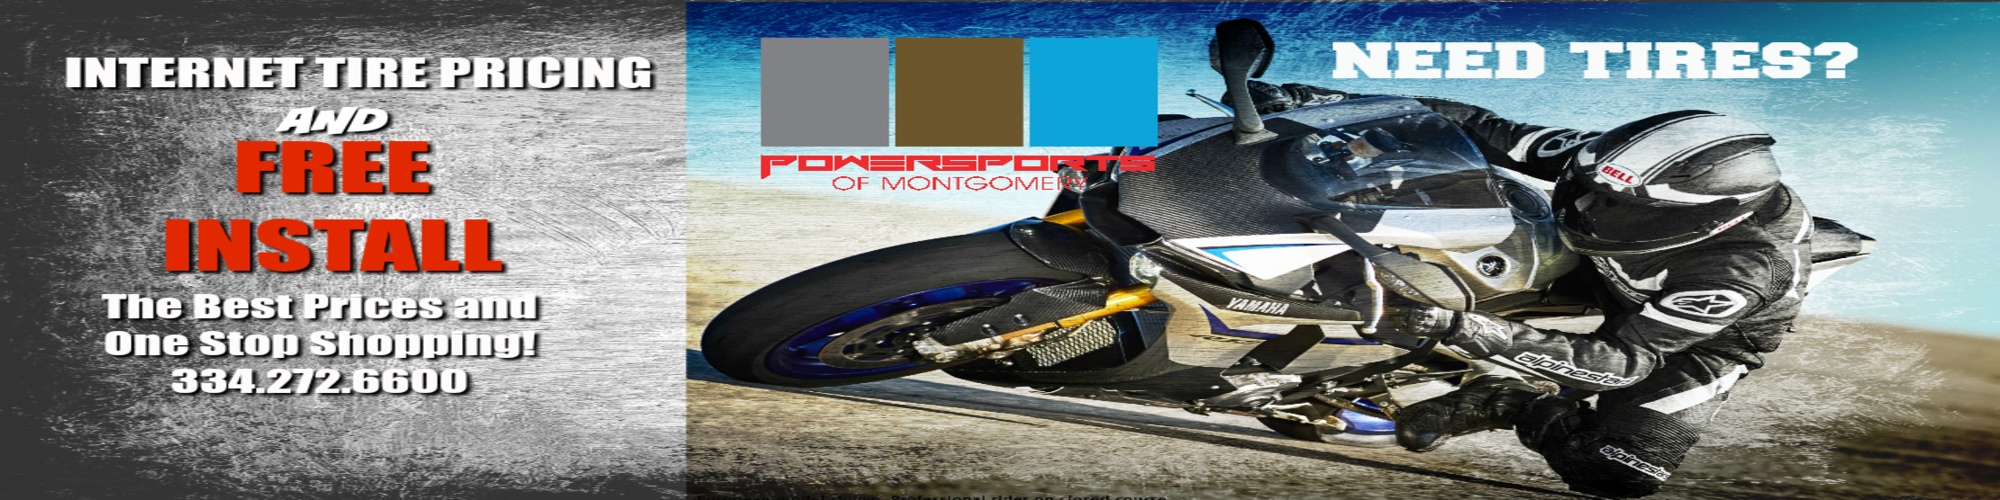 powersports of montgomery located in montgomery, al | alabama's